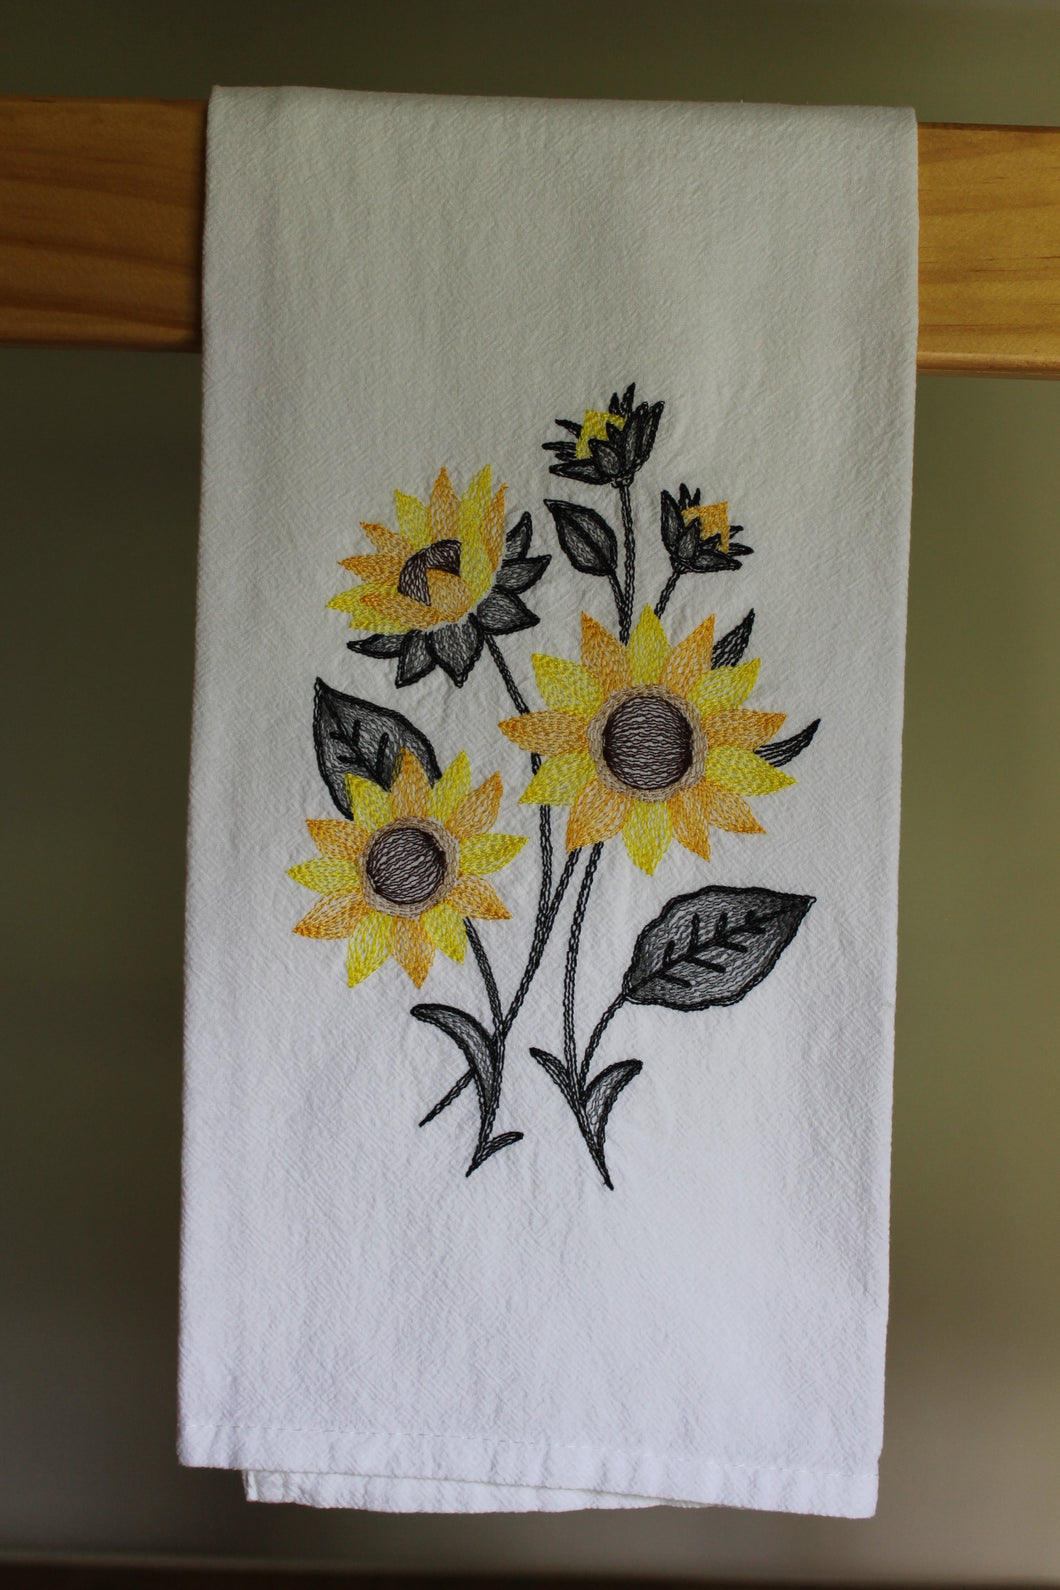 Yellow golden sunflowers in a sketch style embroidery with charchoal leaves, stems